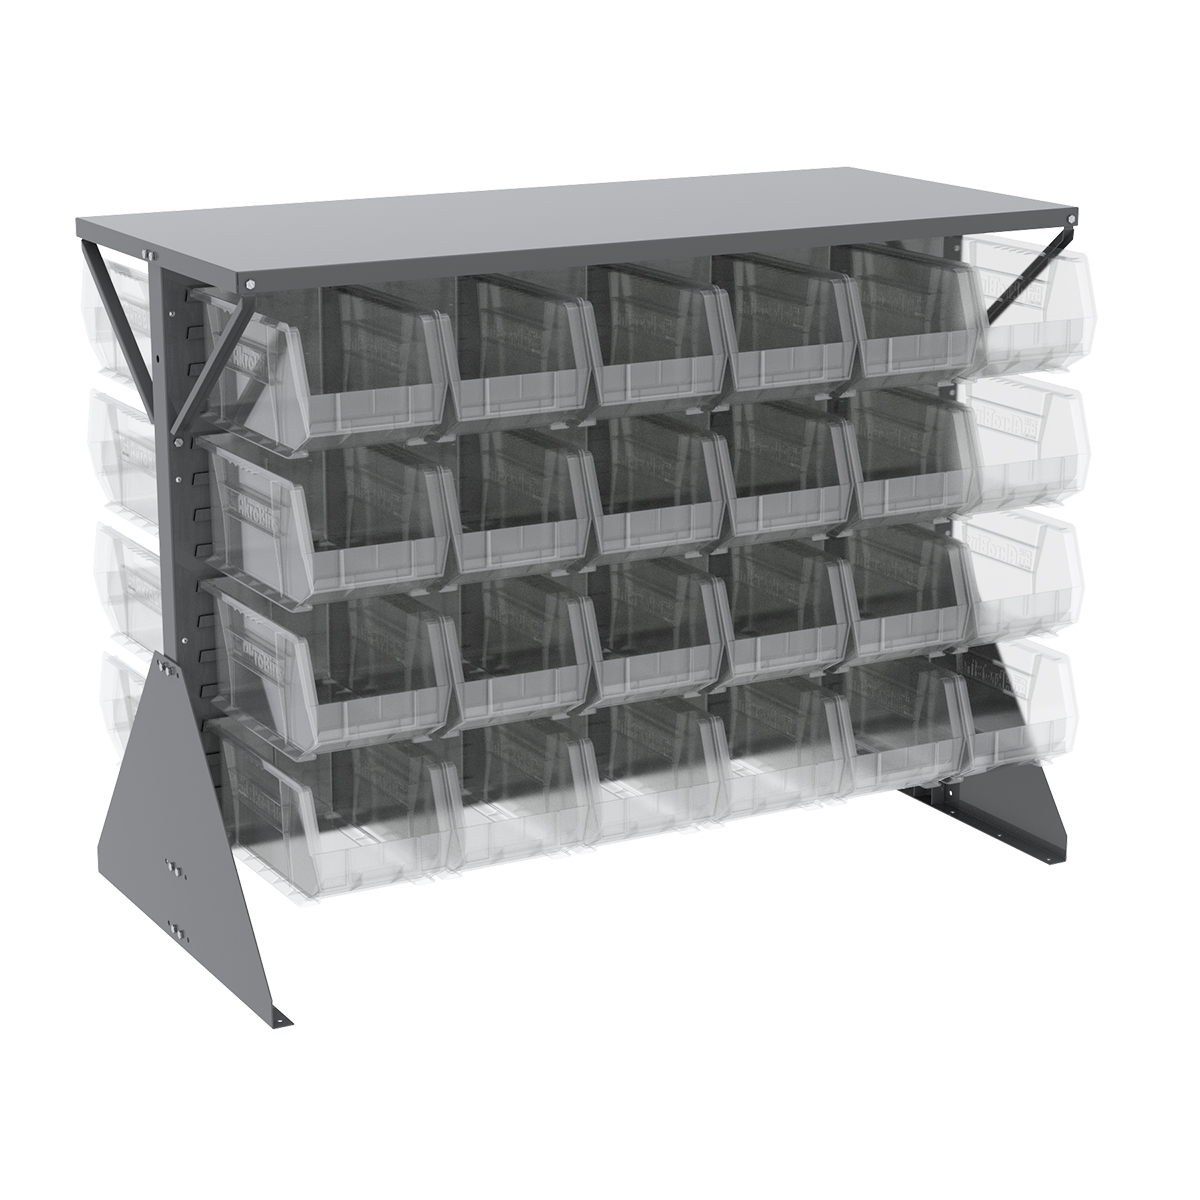 Item DISCONTINUED by Manufacturer.  Low Profile Floor Rack, 2-Sided, Shelf w/ 48 AkroBins, Gray/Clear (30606GY240SC).  This item sold in carton quantities of 1.